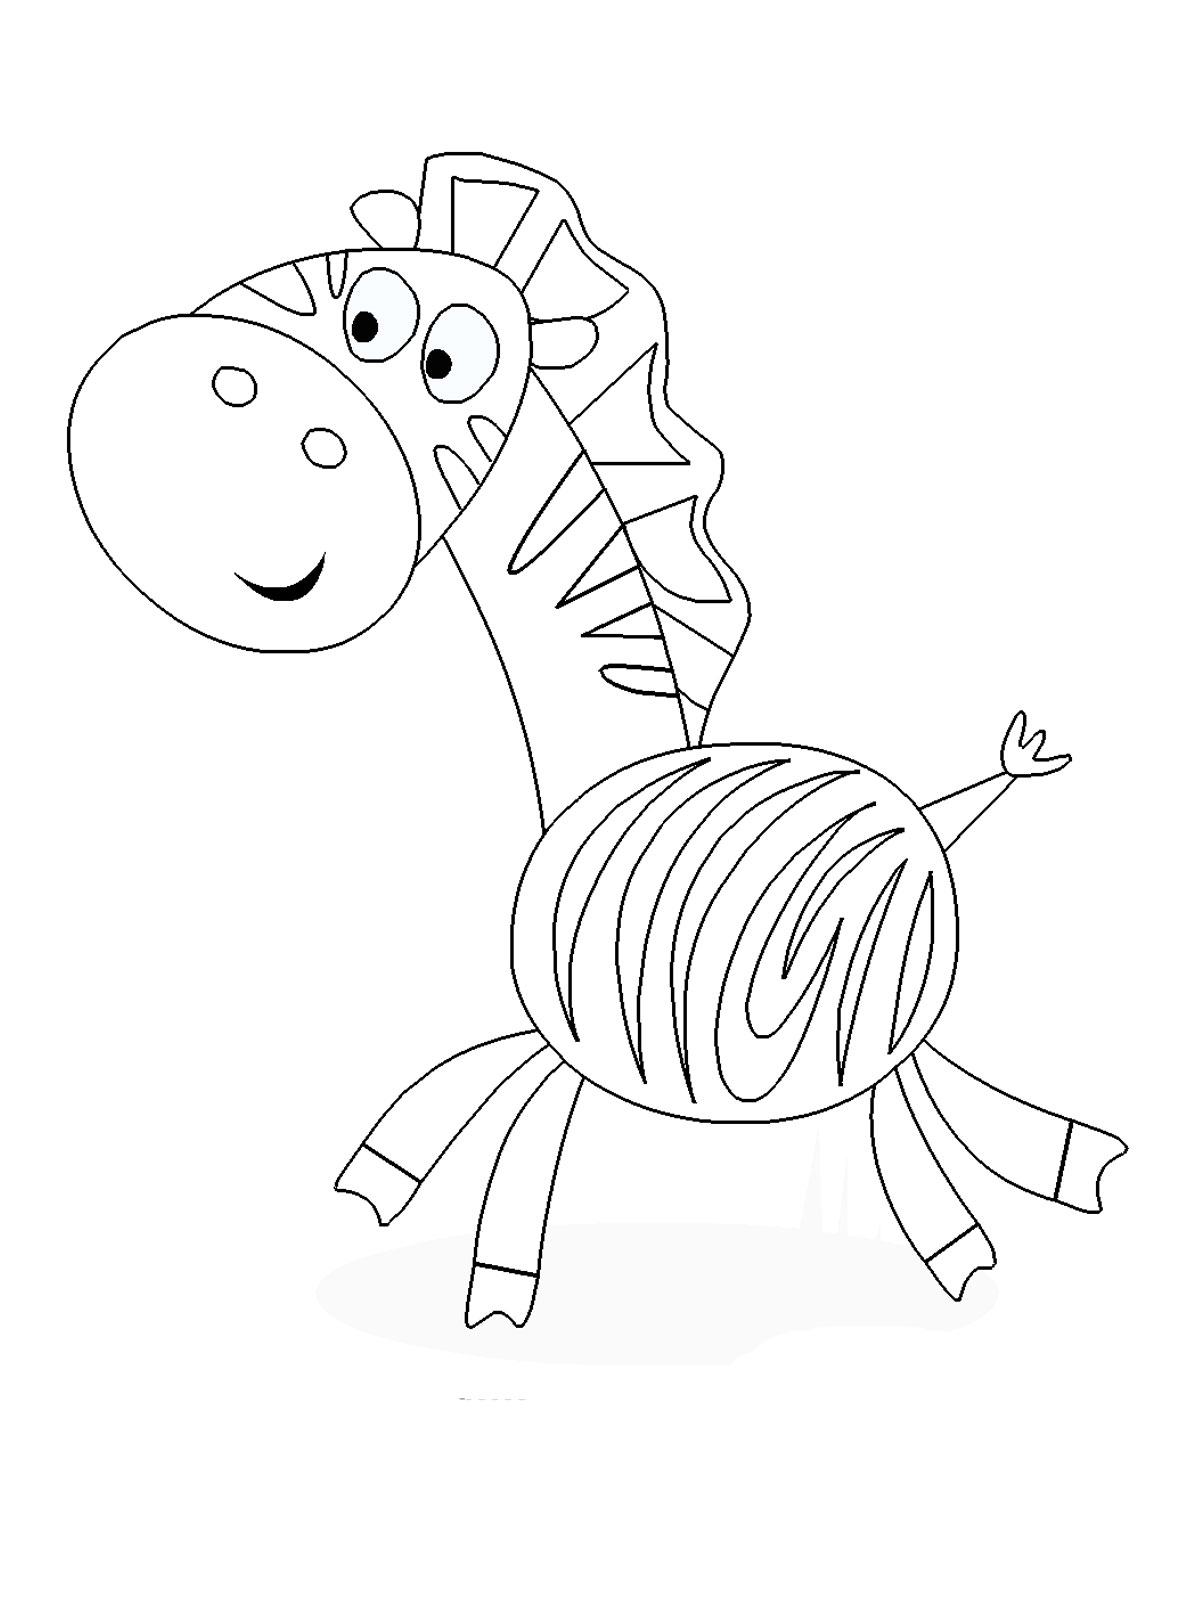 coloring images for kids cartoon coloring pages best coloring pages for kids kids coloring for images